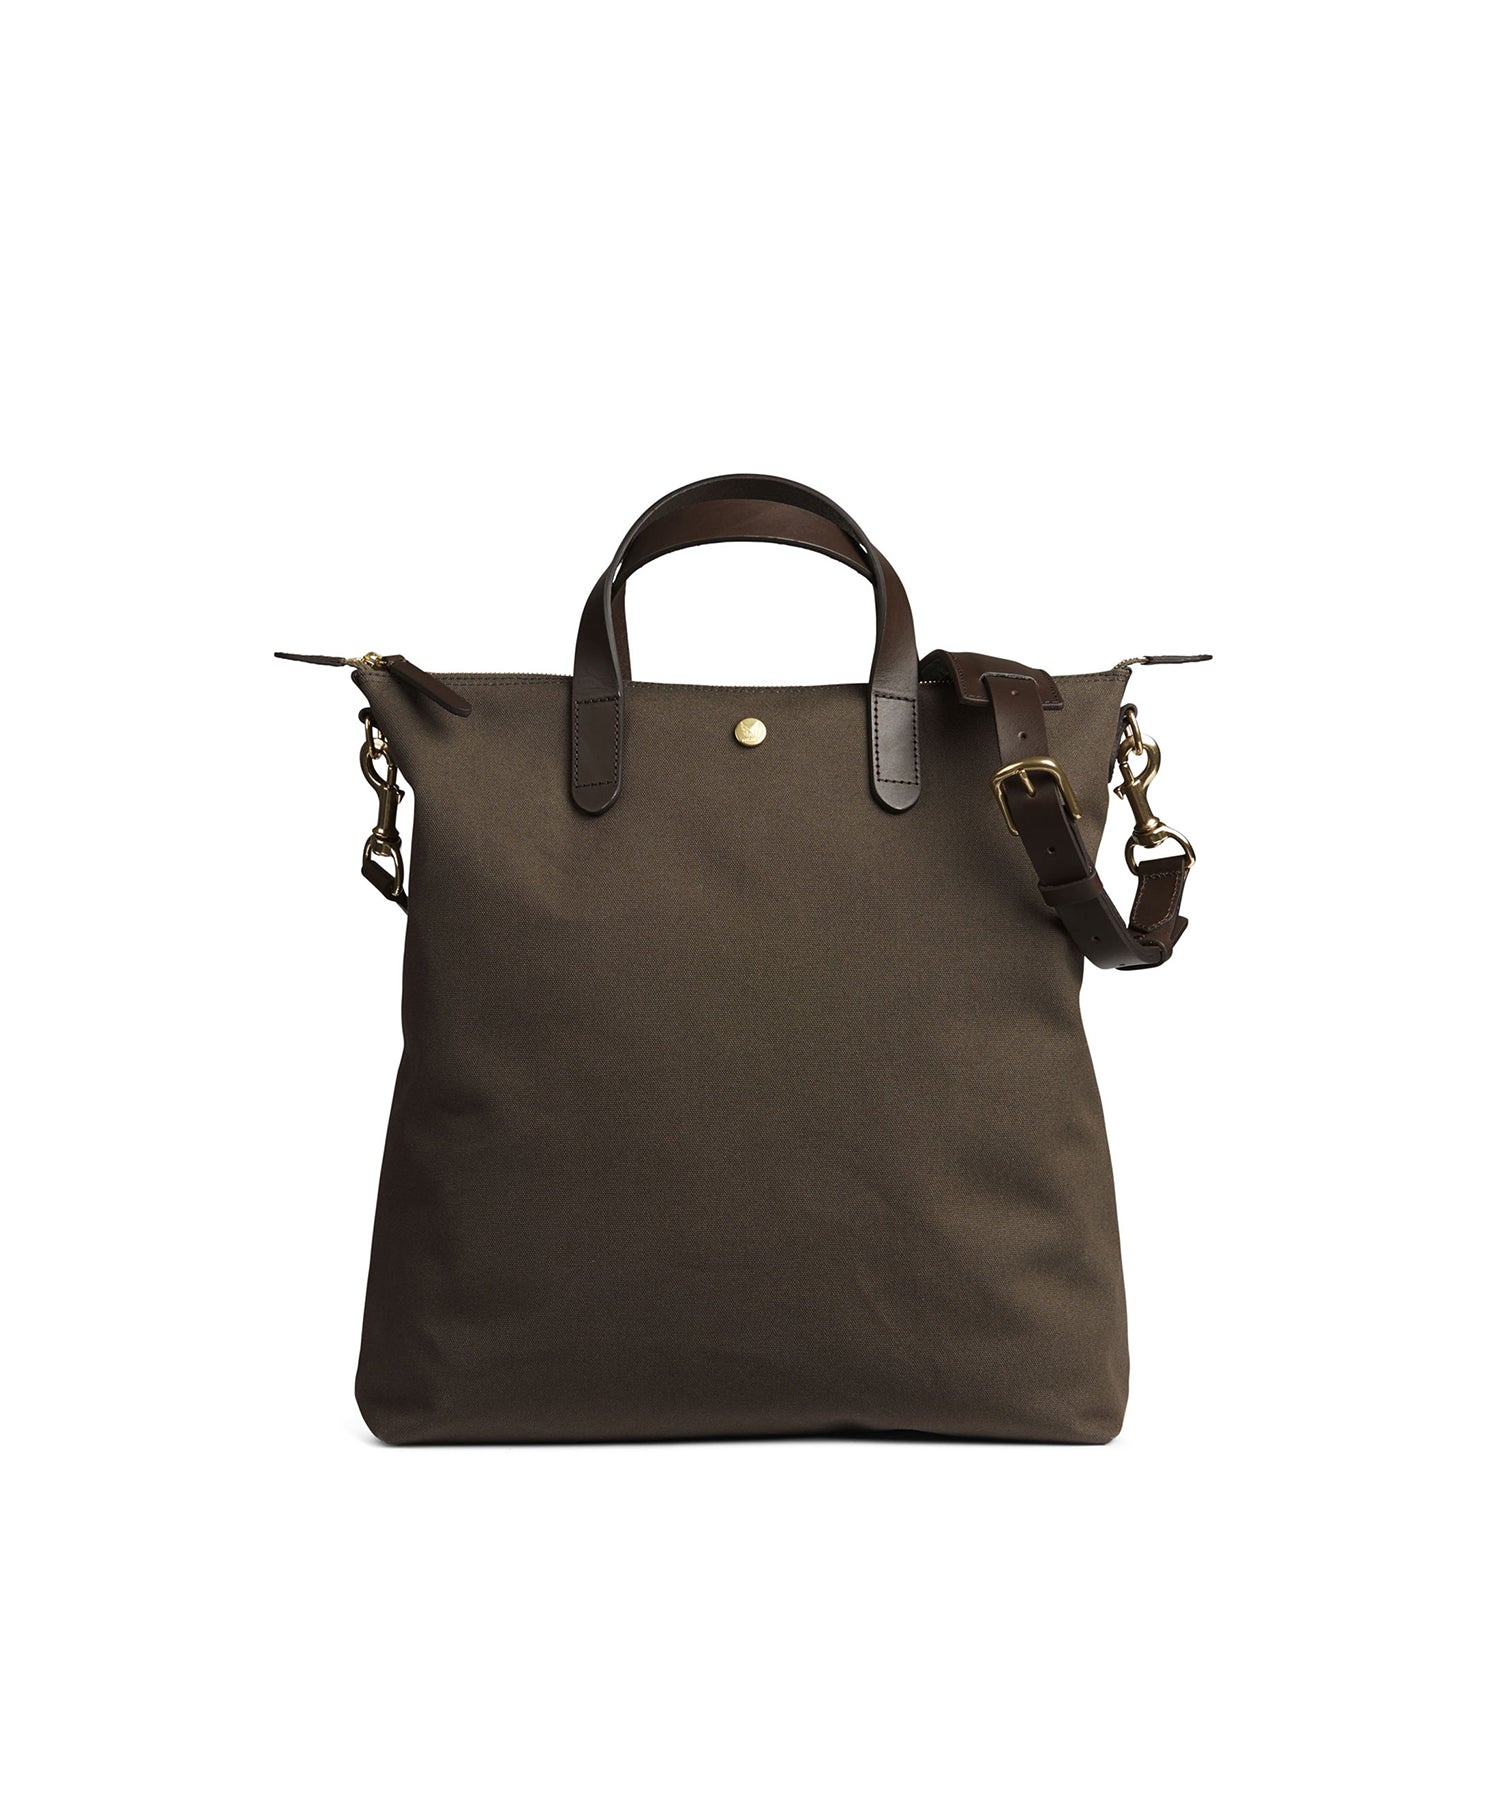 MISMO M/S Shopper in Army